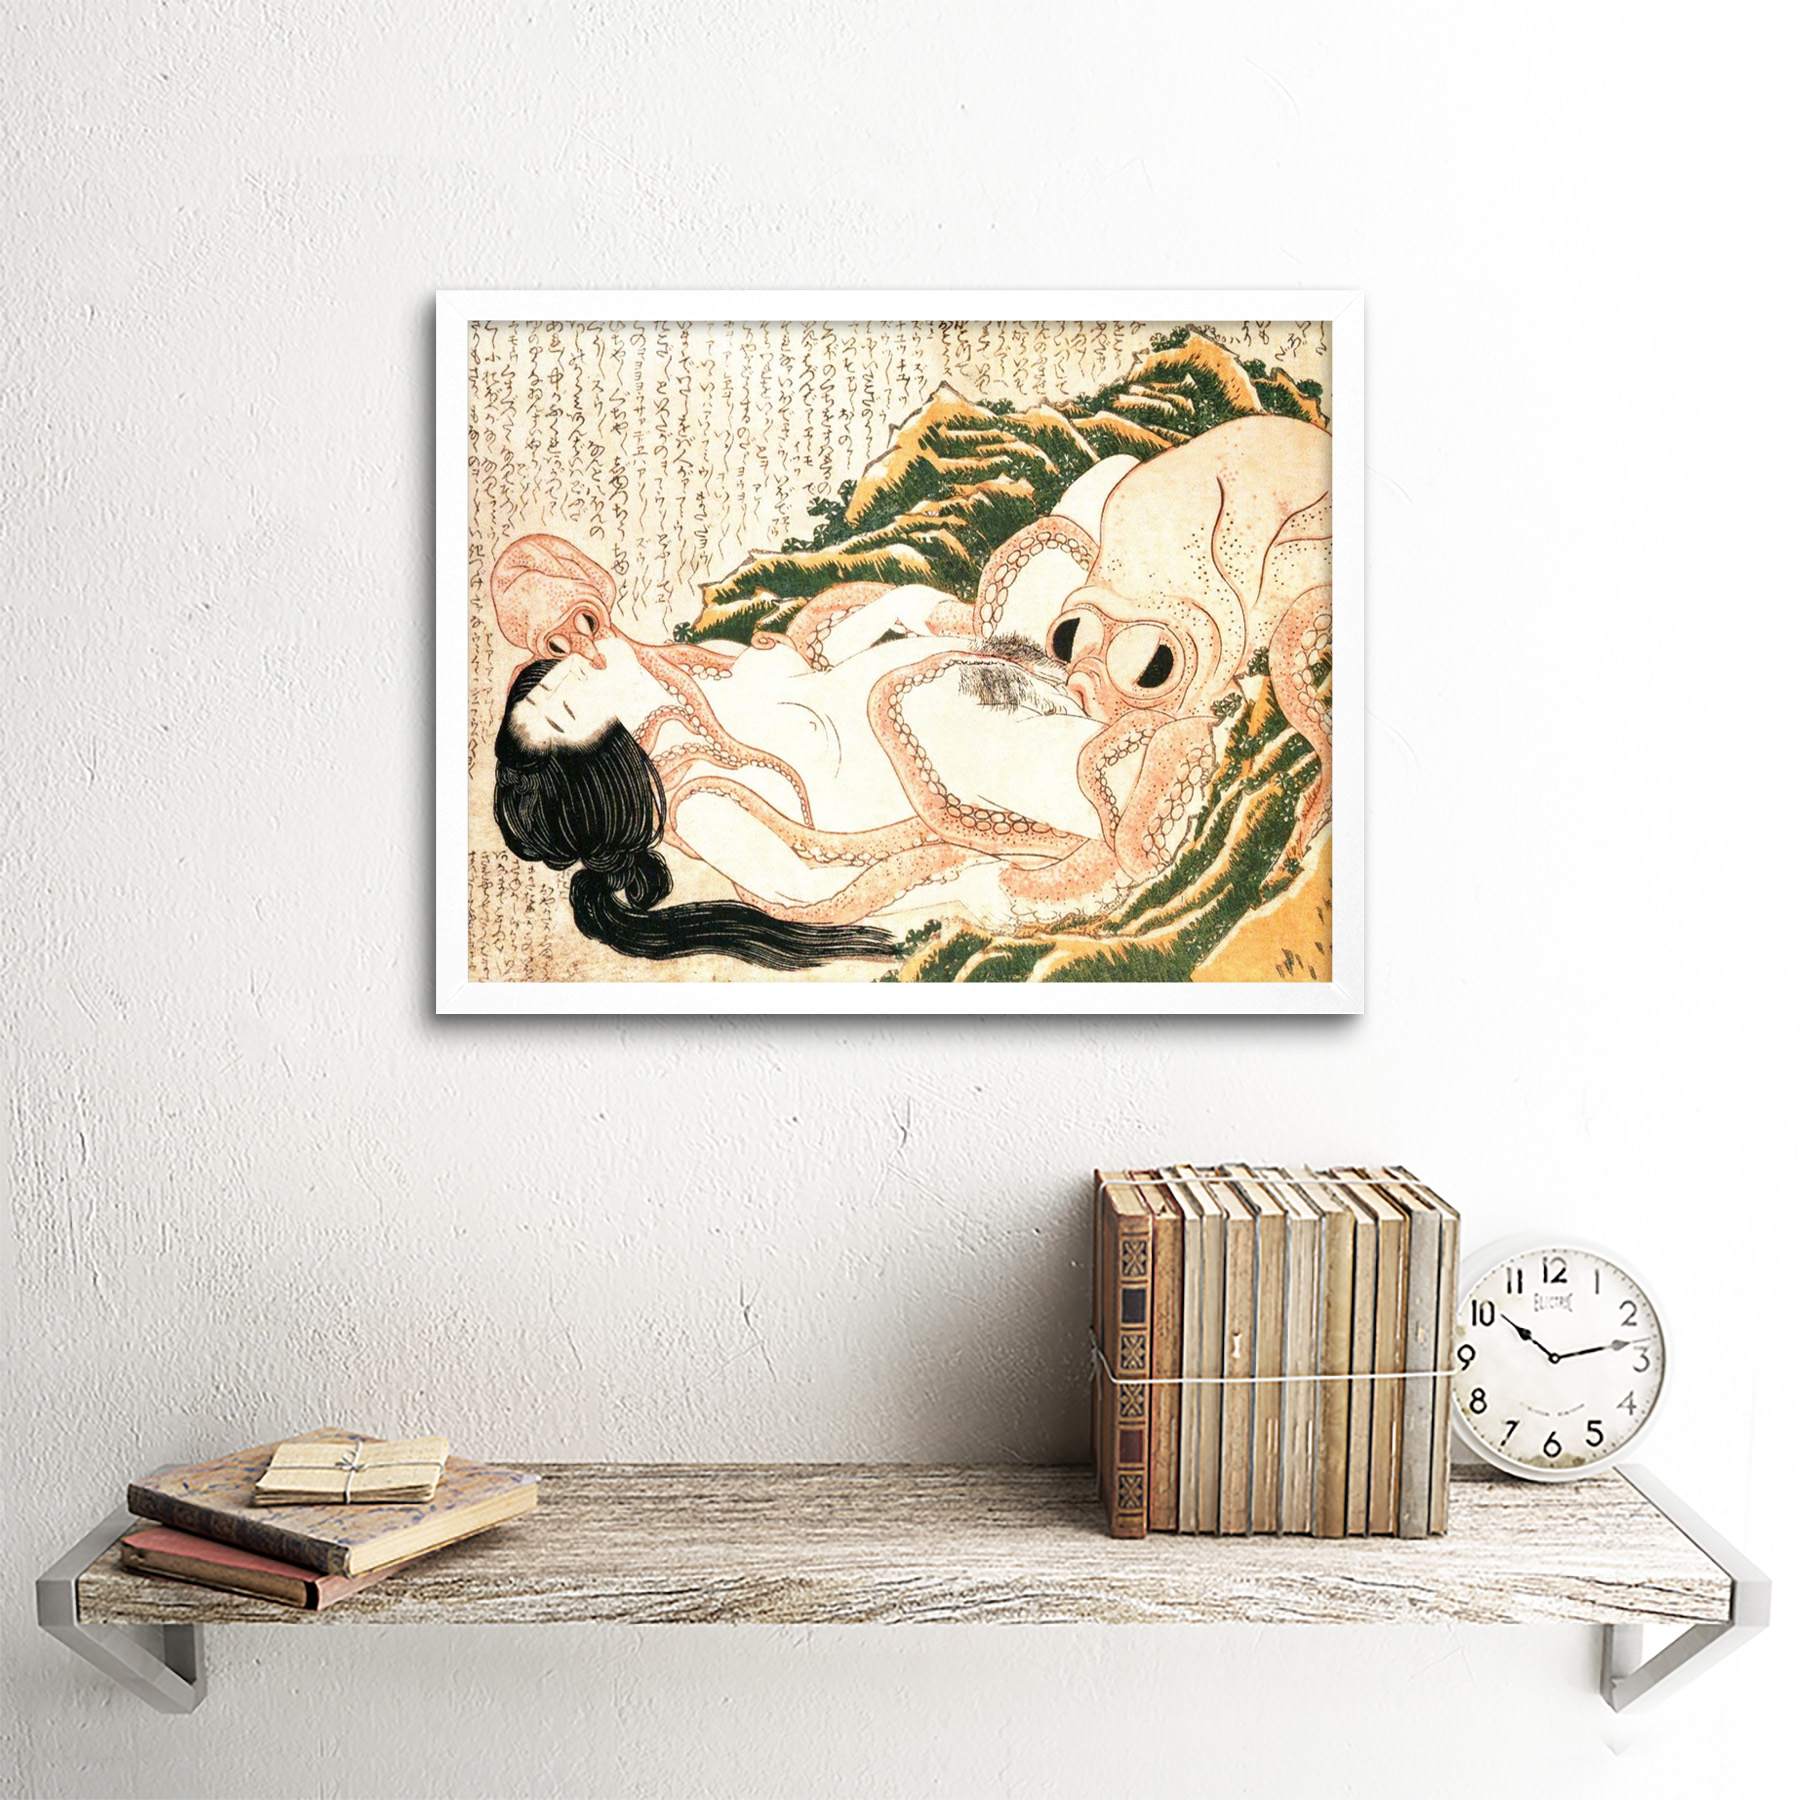 thumbnail 18 - Hokusai-Octopus-Fishermans-Wife-Dreams-Adult-Japanese-Art-Print-Framed-12x16